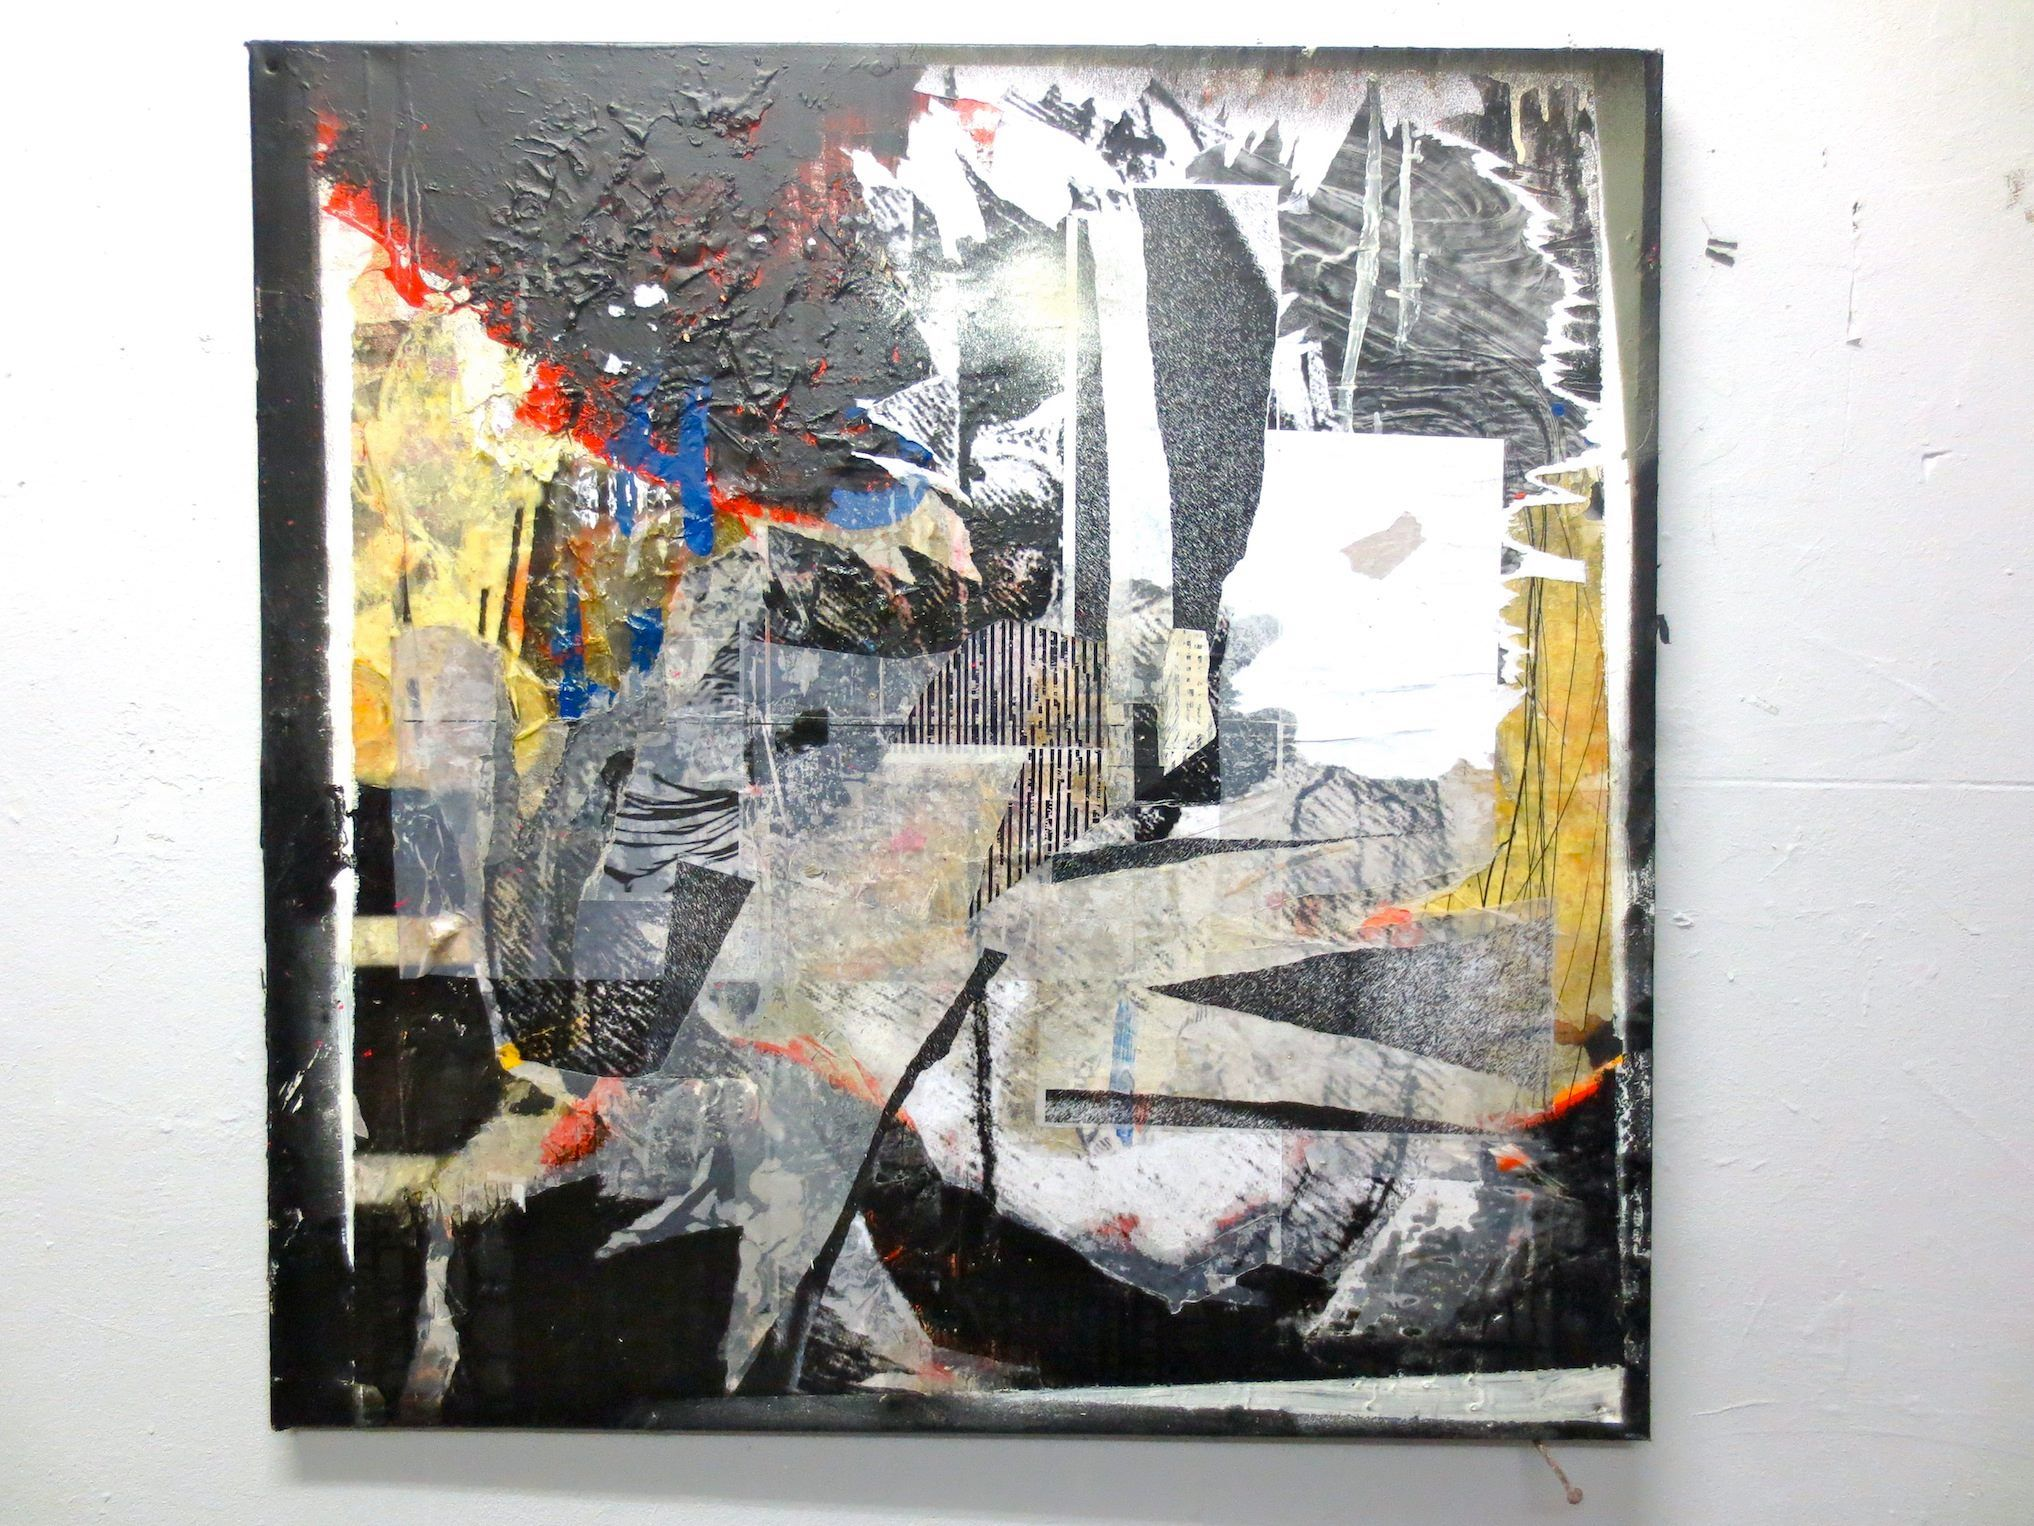 """""""self obliteration"""" PAINTING Artwork on canvas, 60cm x 60cm  Alain de Botton (446,000 followers) suggests a Twitter guru. """"We need, on occasion, to be able to go to a quieter place.""""  anton UNAI (0 followers) is NOT convinced"""